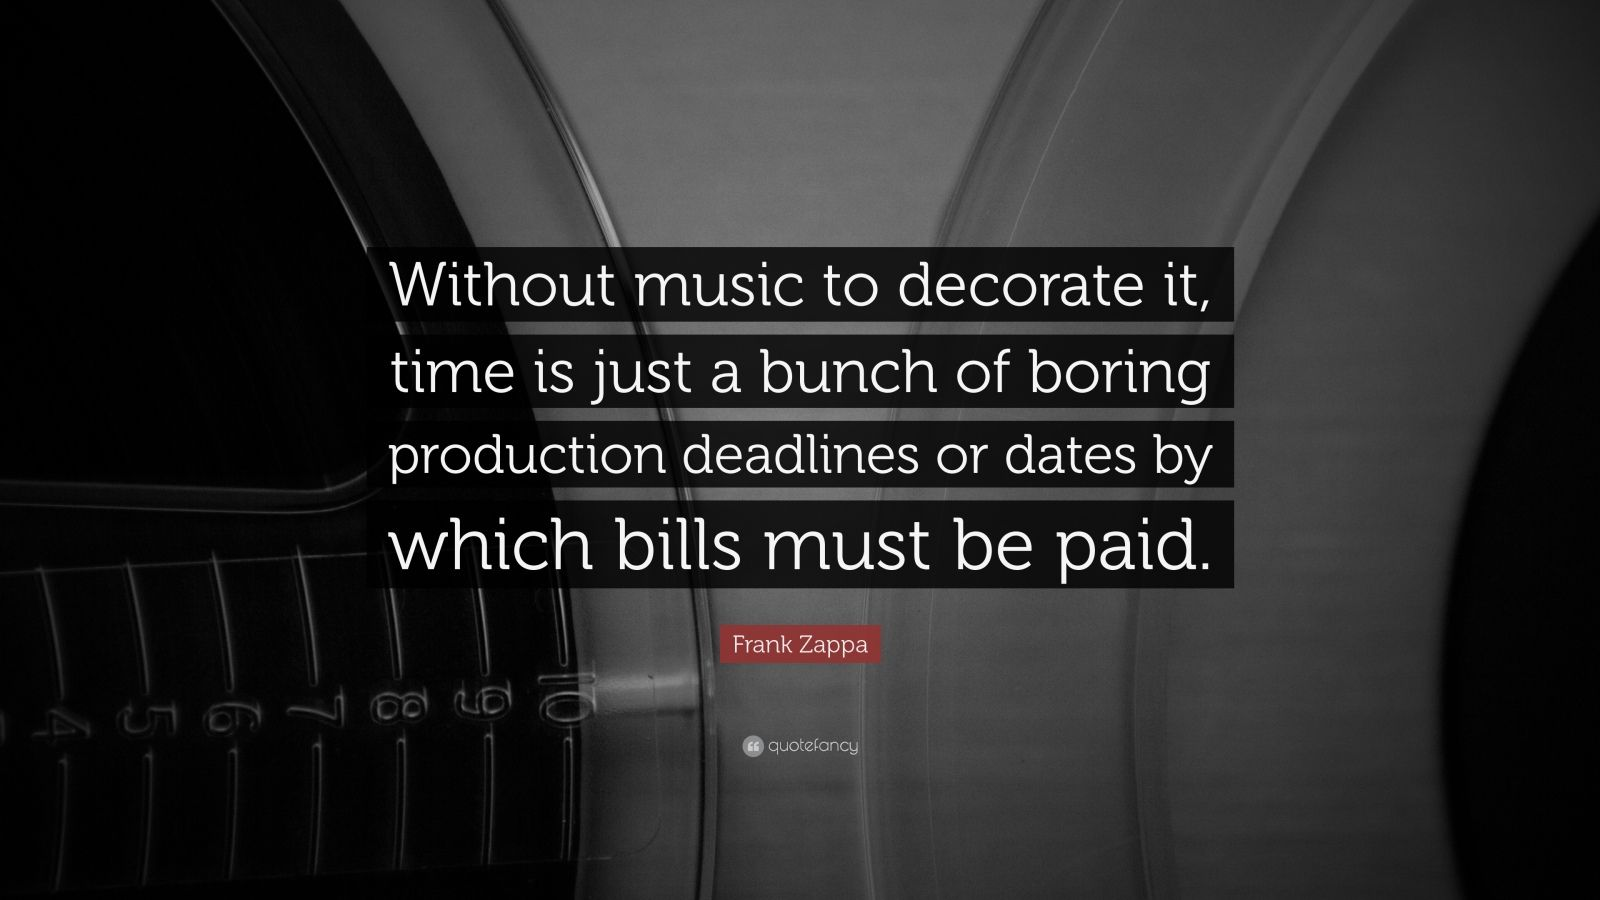 Music Quotes: U201cWithout Music To Decorate It, Time Is Just A Bunch Of